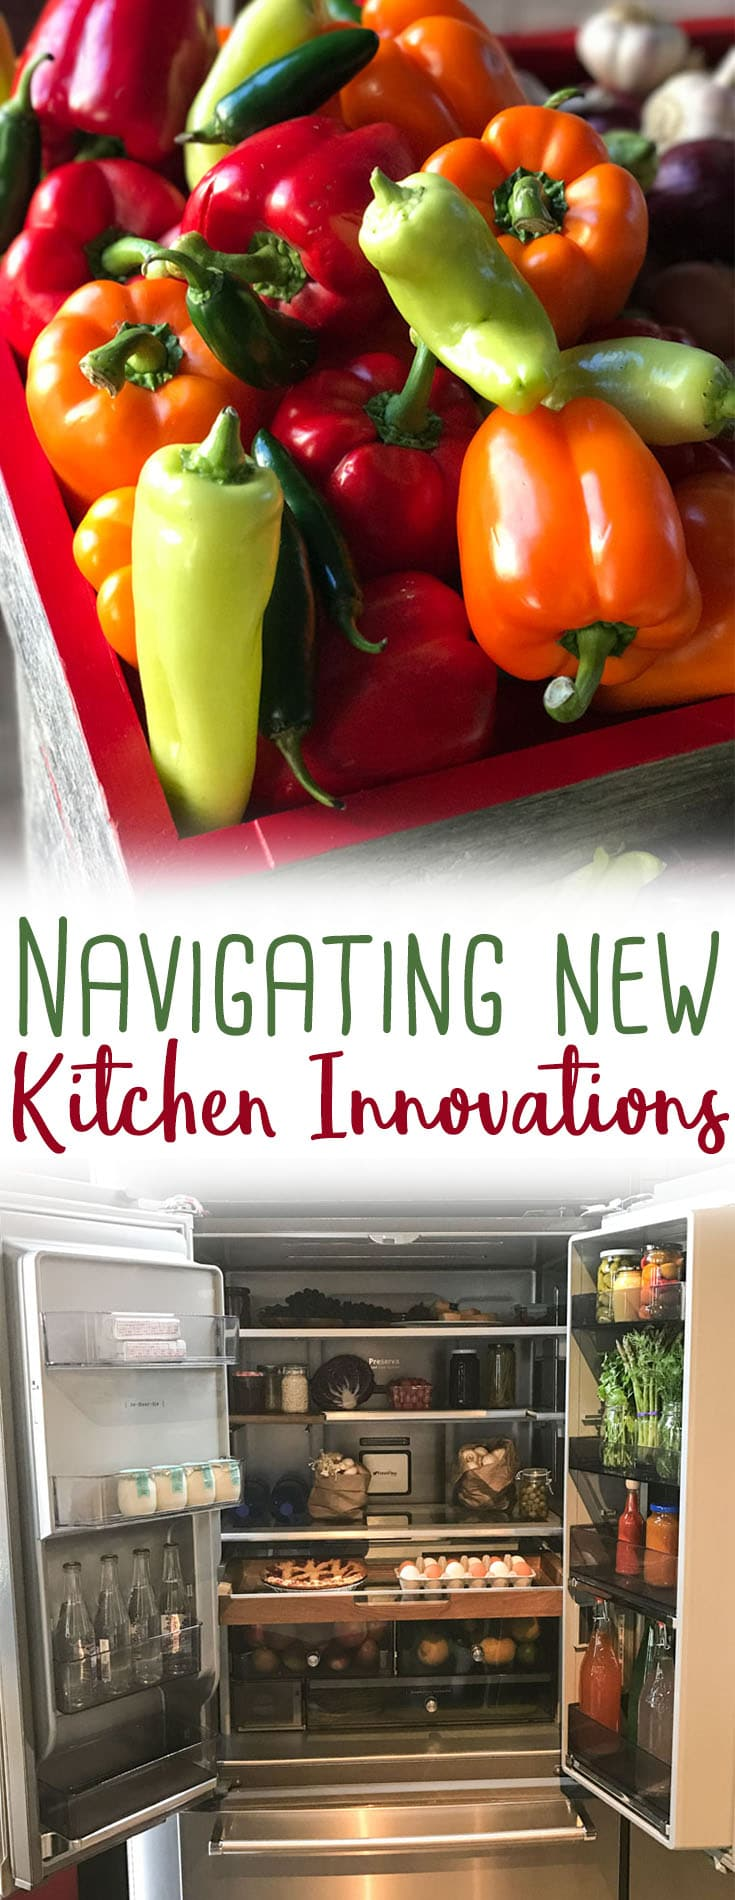 Navigating The Newest Kitchen Innovations From KitchenAid